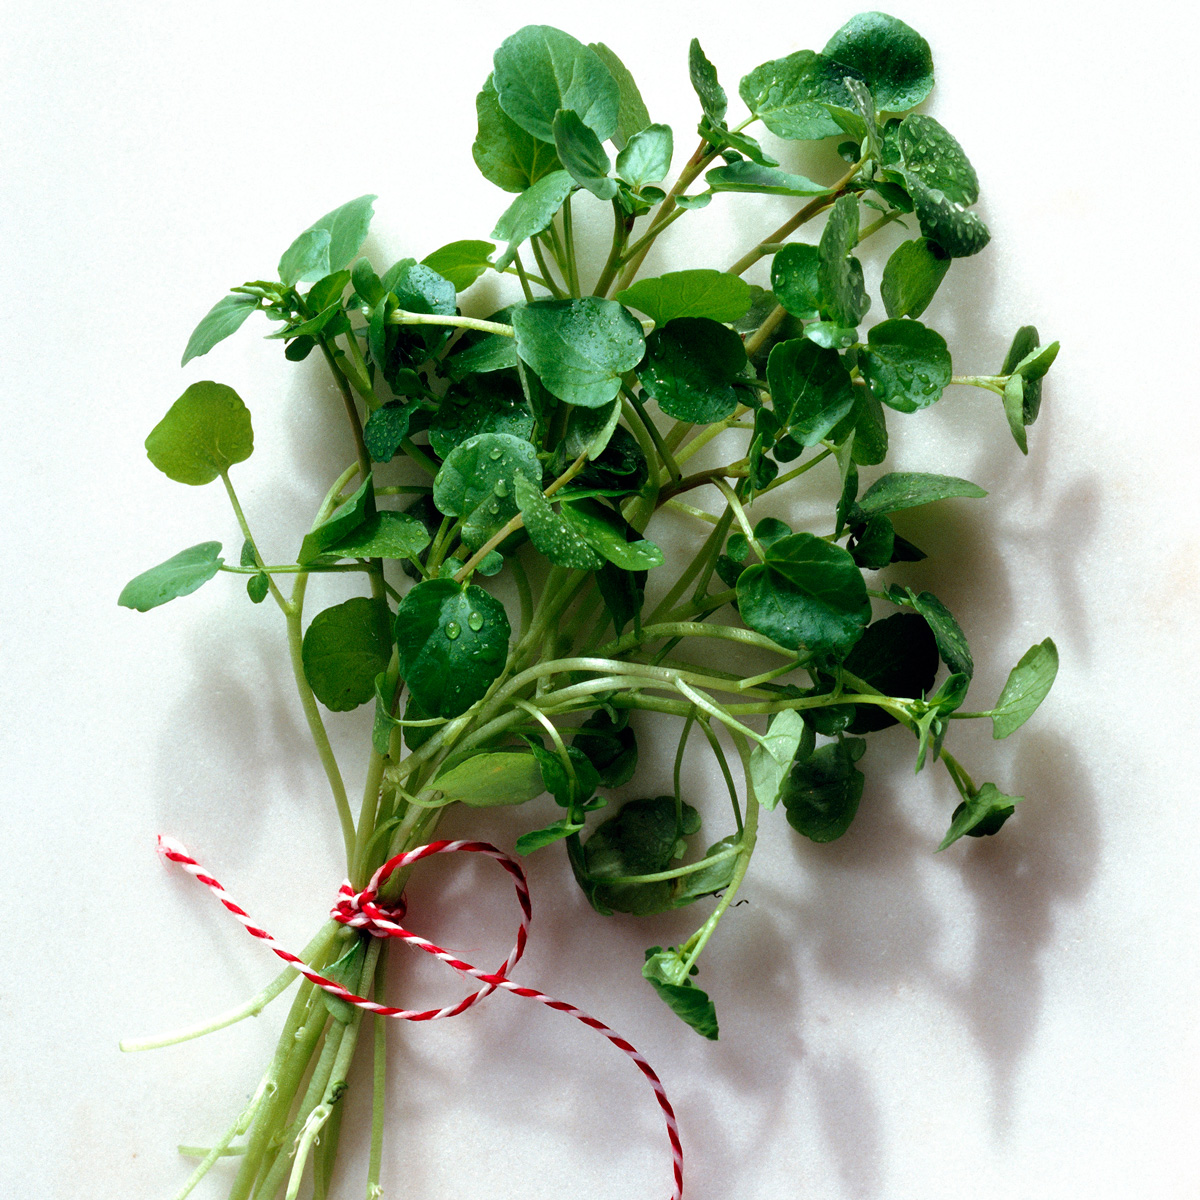 Watercress Edible Weeds